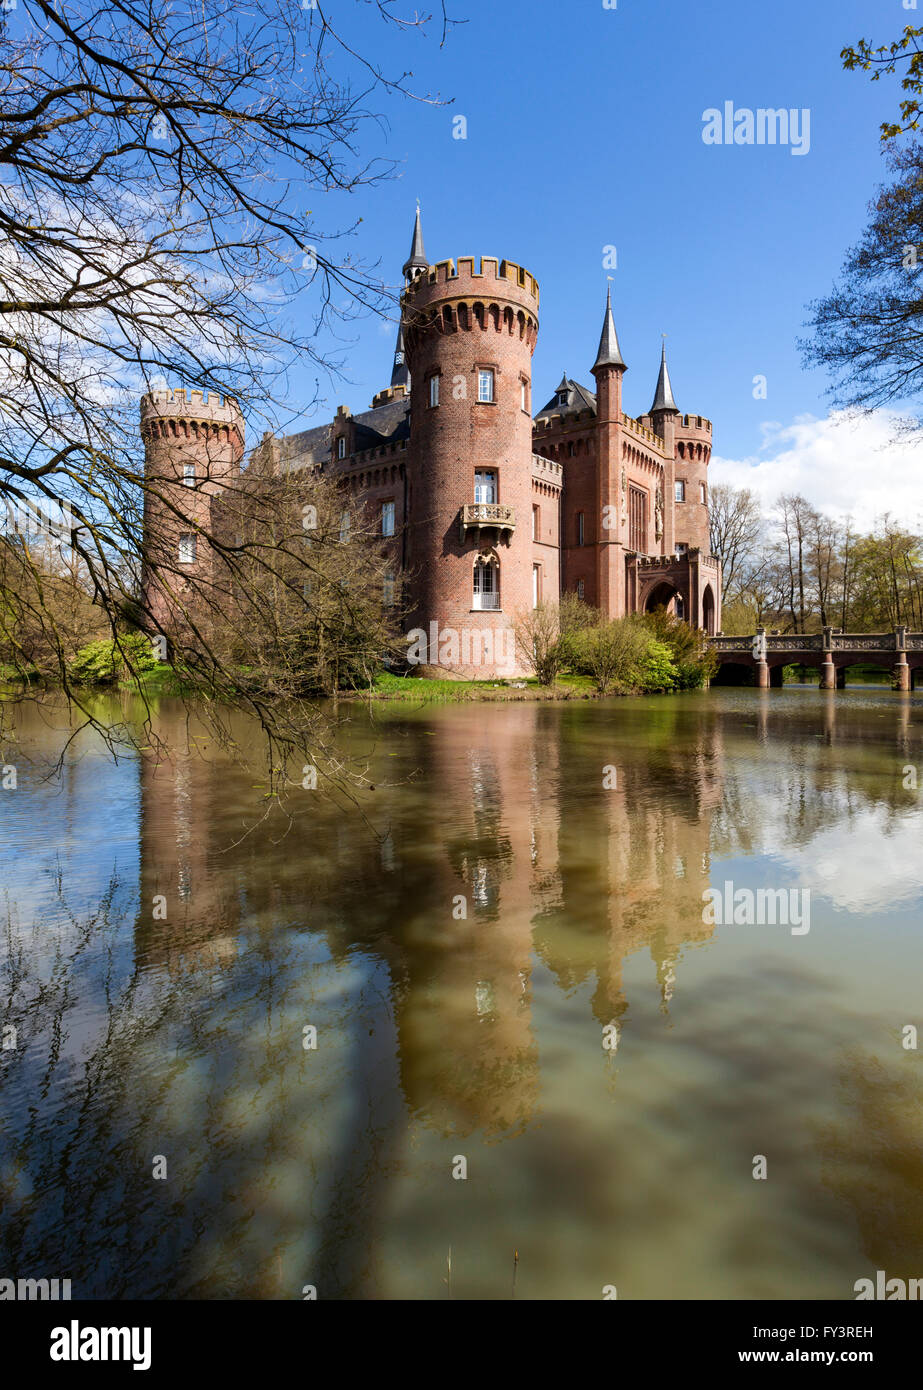 Castle Moyland at Bedburg-Hau near Kleve in the Lower Rhine region, view from South-West - Stock Image